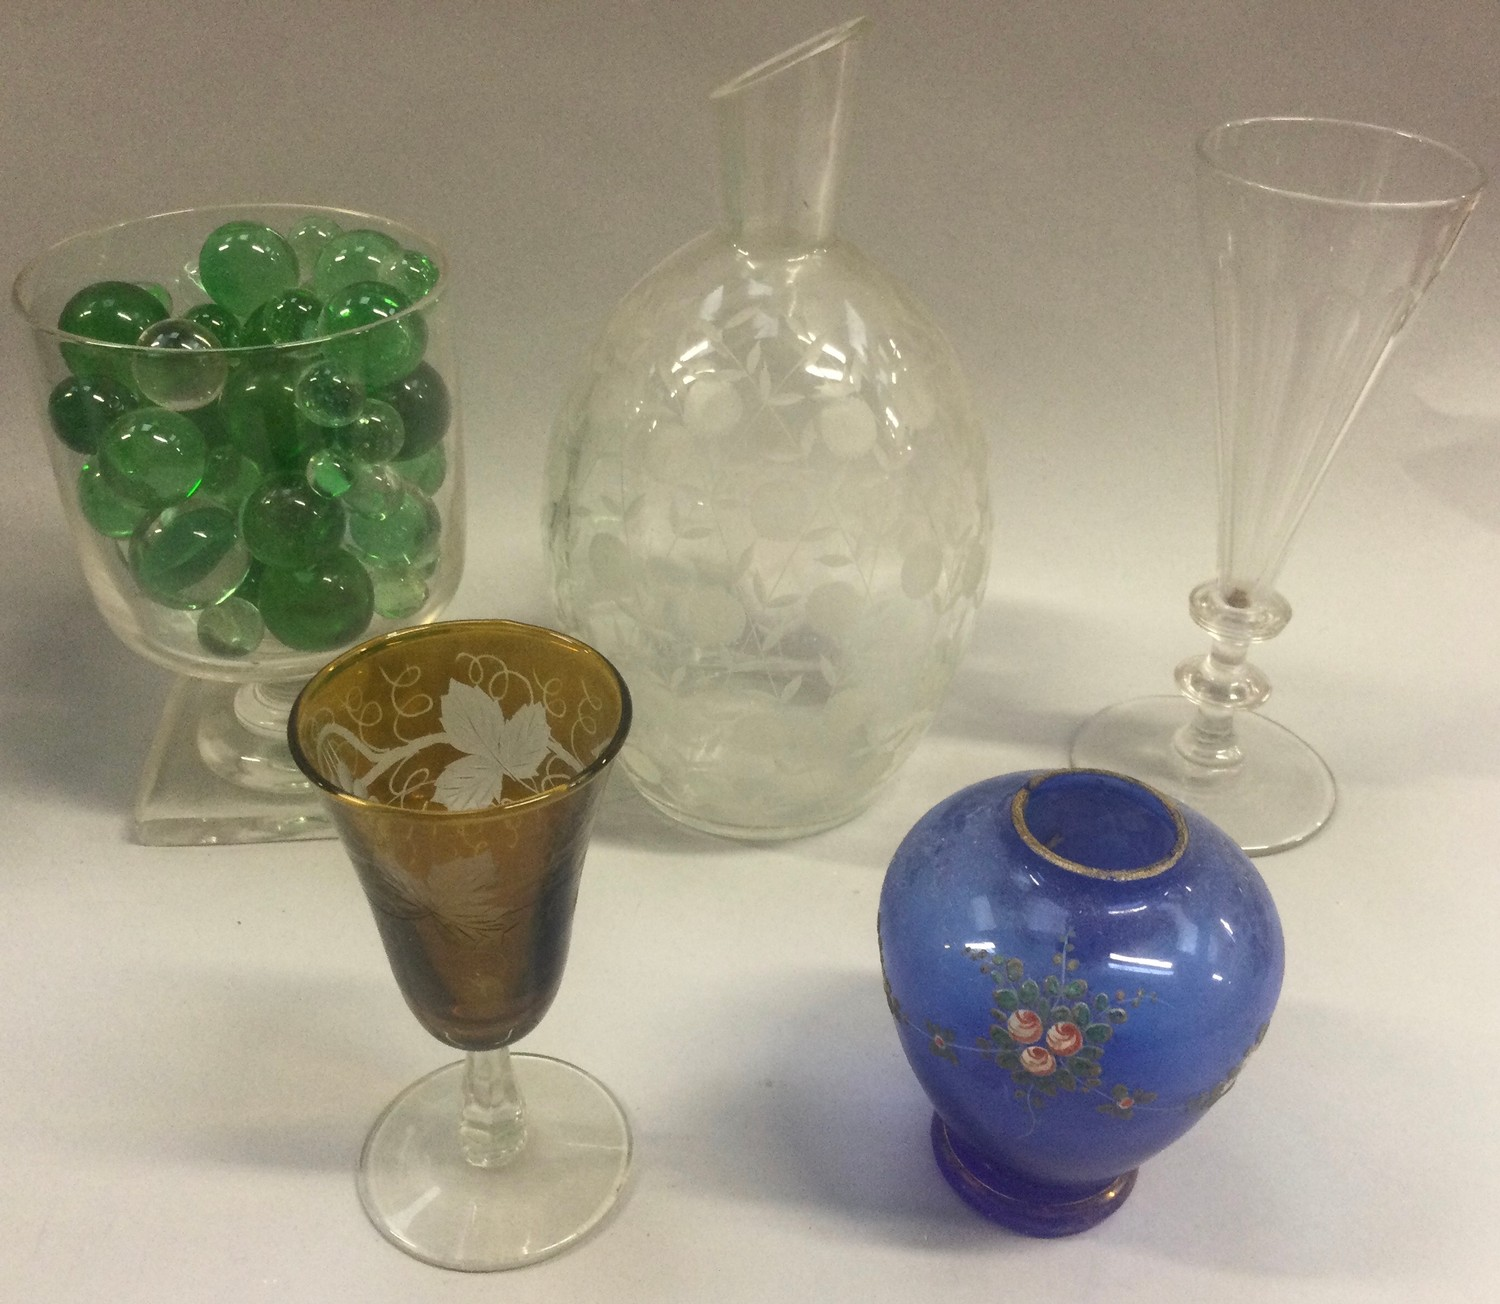 19th century cut glass champagne flute, engraved glass vase, small collection of marbles and further - Image 4 of 4